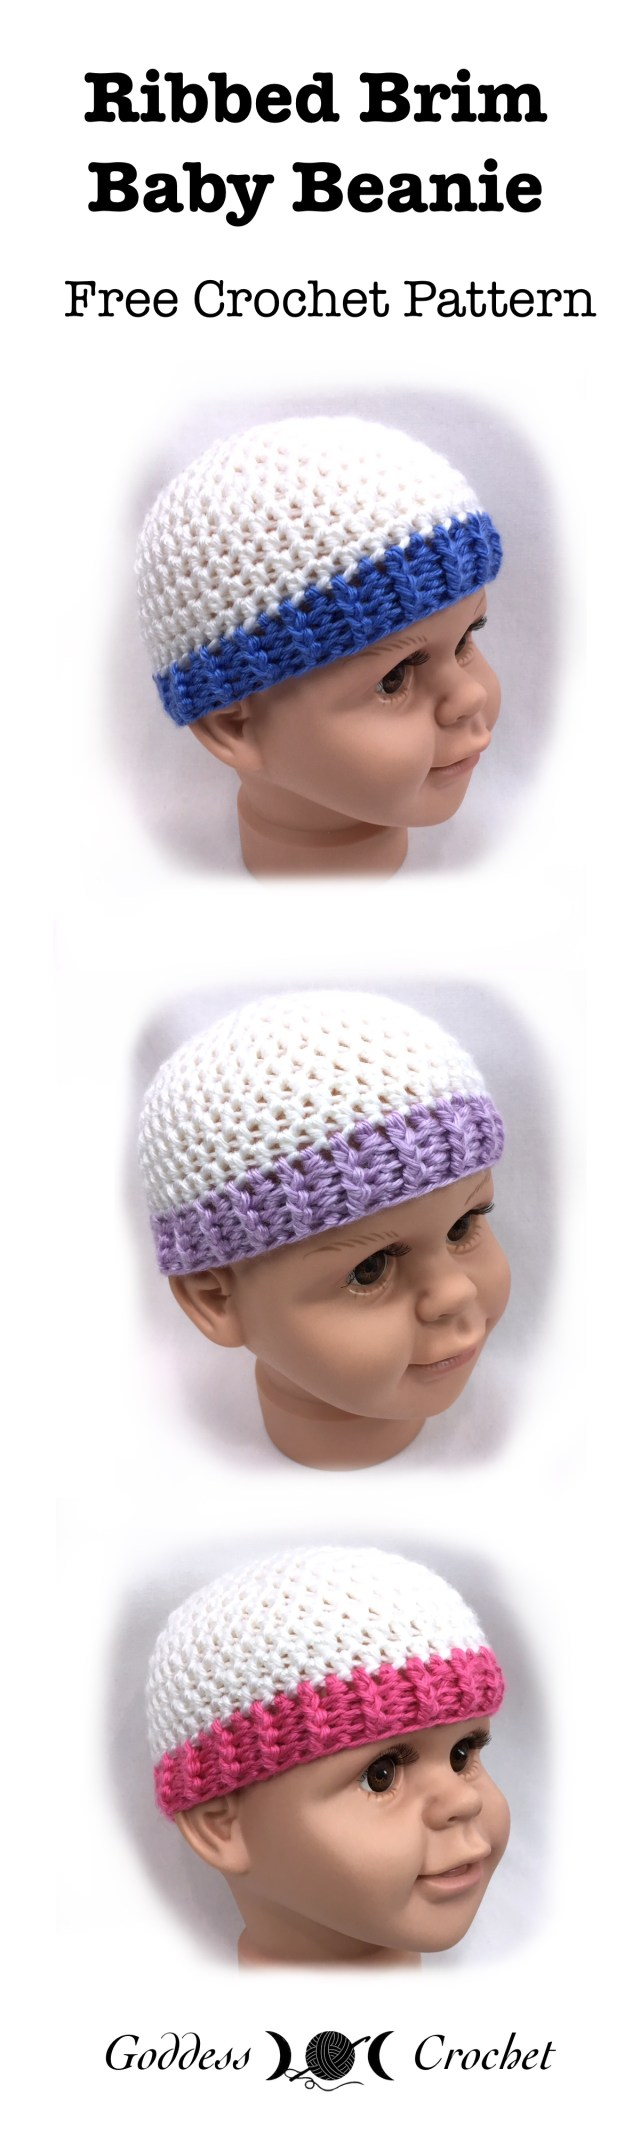 Ribbed Brim Baby Beanie - Free Crochet Pattern